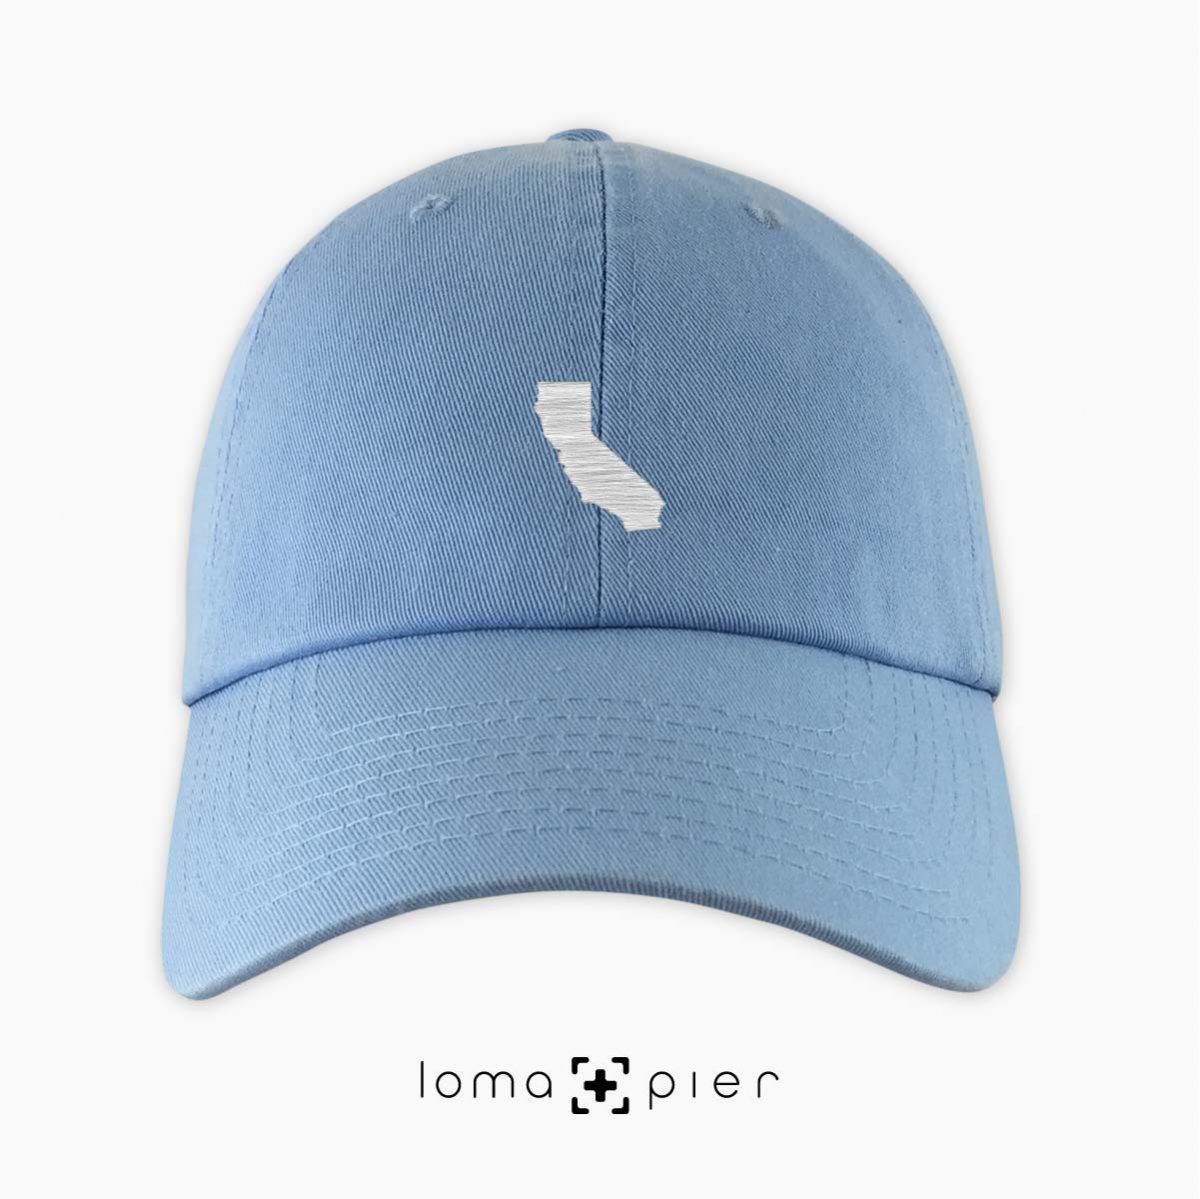 CALIFORNIA silhouette icon embroidered on a light blue unstructured dad hat by loma+pier hat store made in the USA